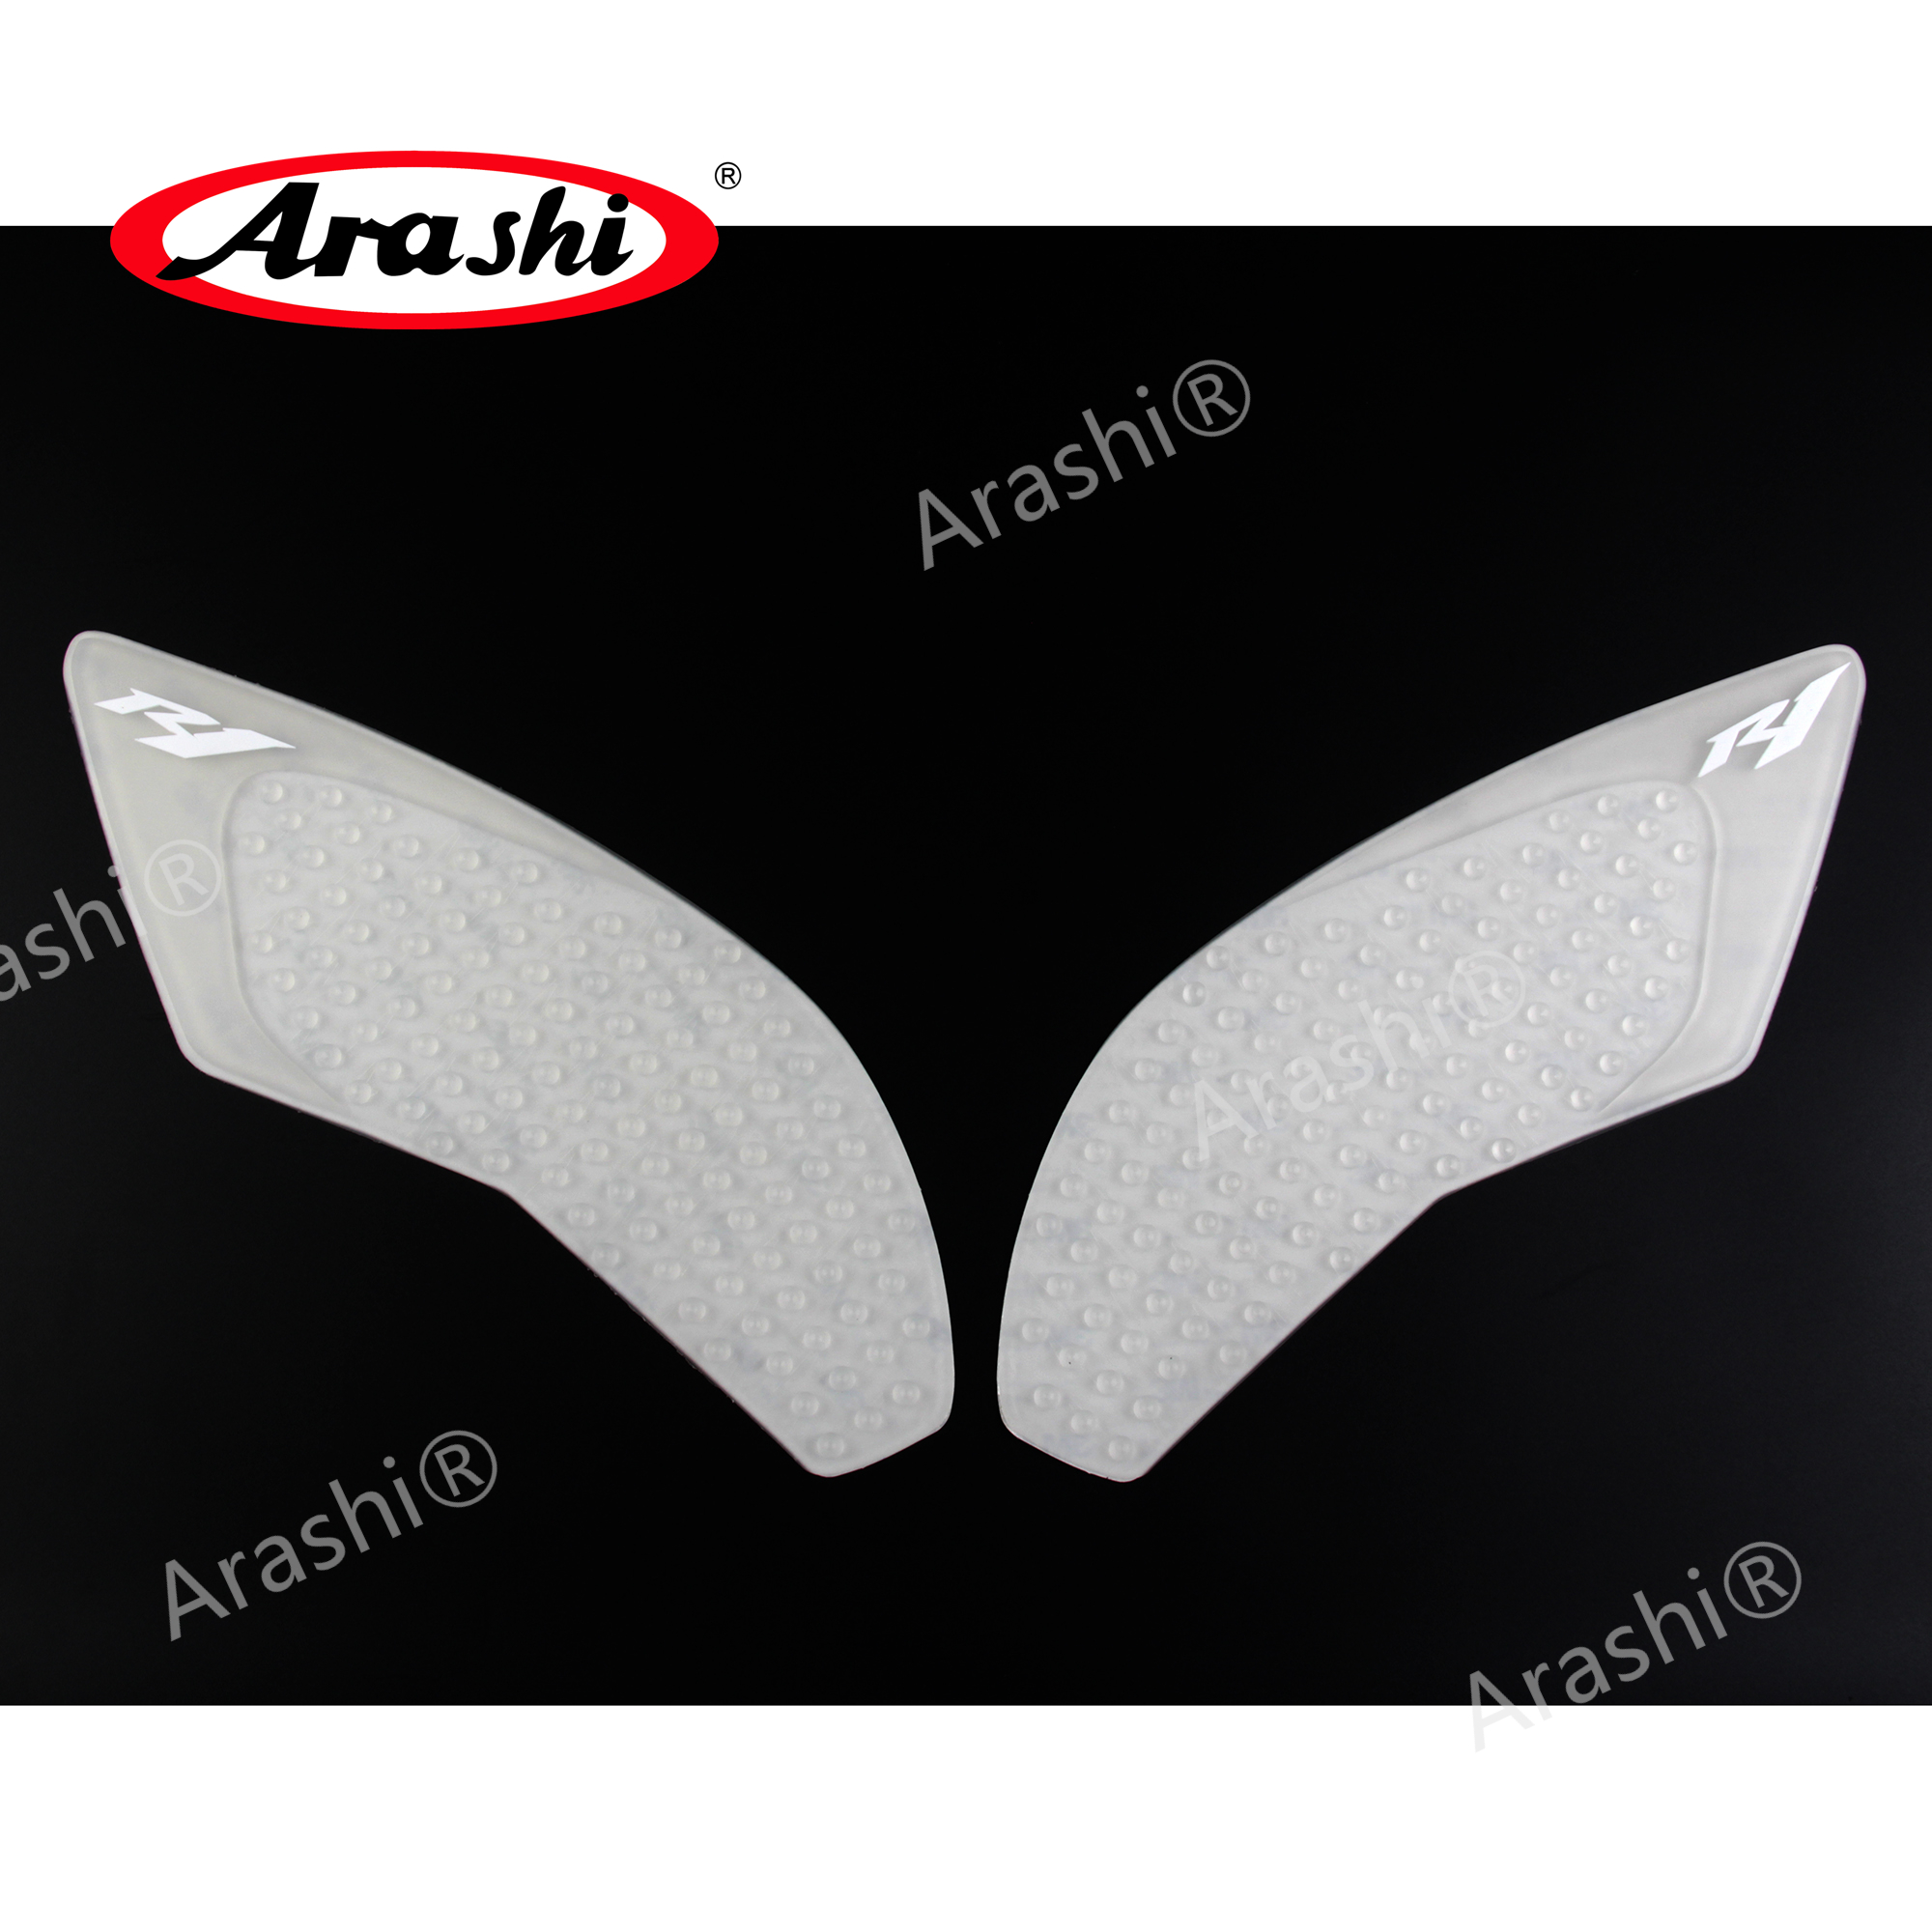 For Yamaha YZF R1 YZFR1 2015 2016 2017 2018 YZF-R1 Motorcycle 3M Tank Pad Gas Anti slip Stickers Adhesive Rubber Traction Side Fuel Gas Grip Decal Protector